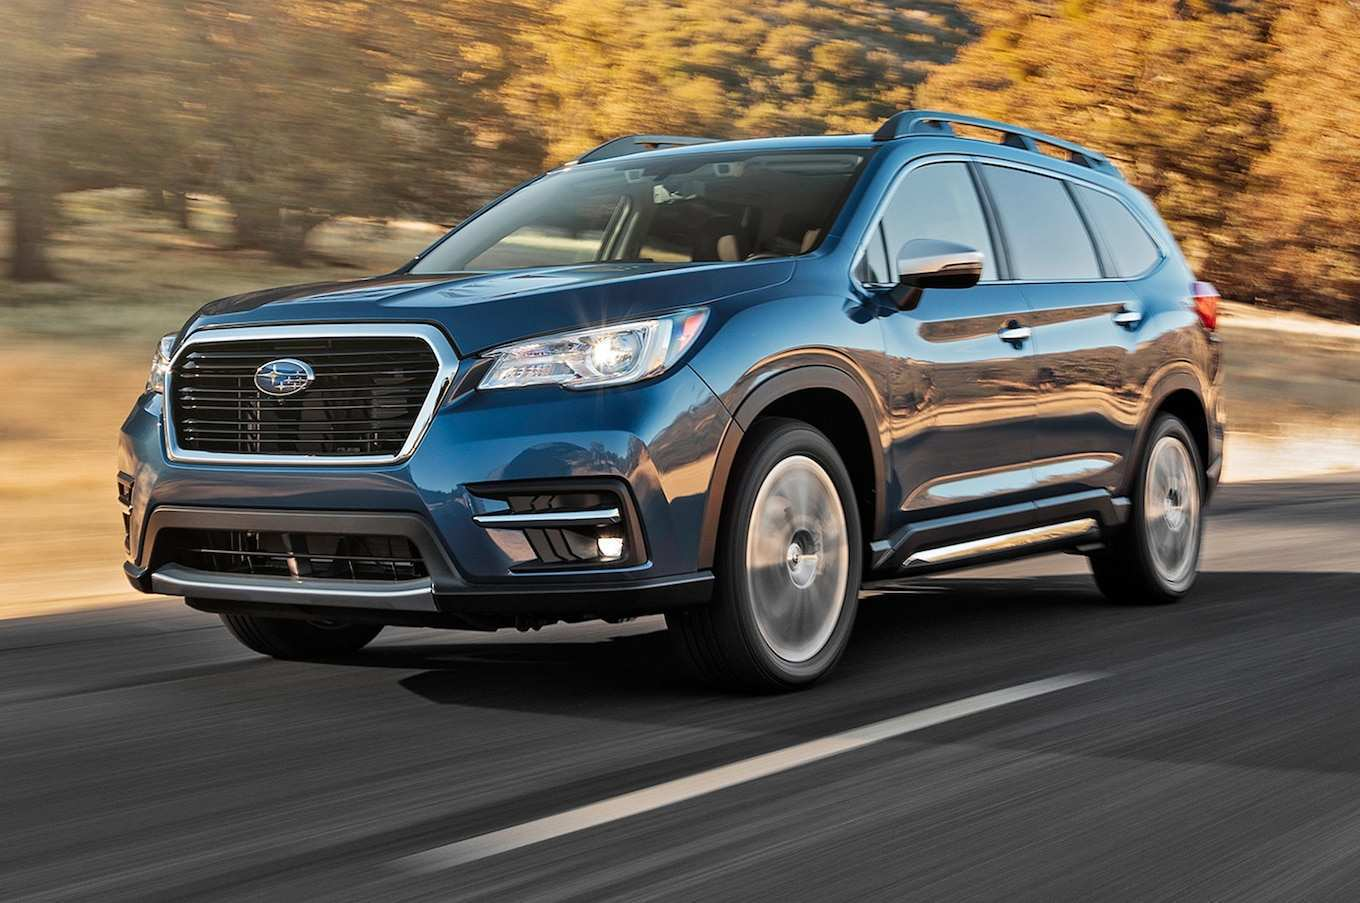 99 Great Best 2019 Subaru Ascent Release Date Usa Specs Redesign and Concept with Best 2019 Subaru Ascent Release Date Usa Specs